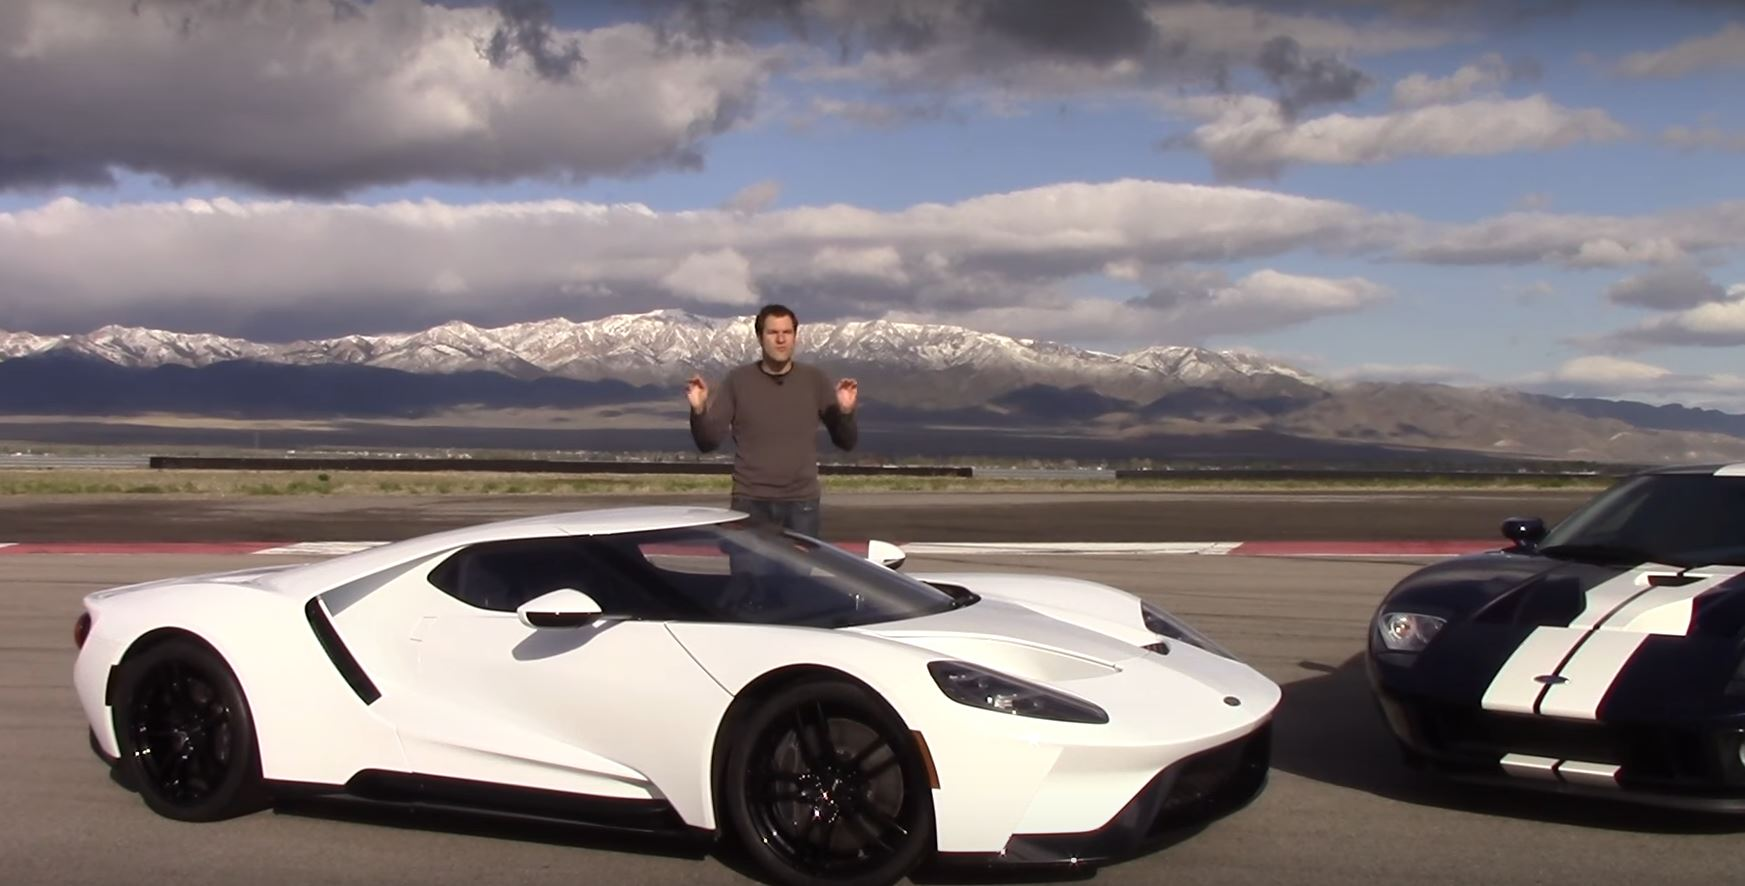 2017 ford gt vs 2005 ford gt is an american supercar evolution comparison